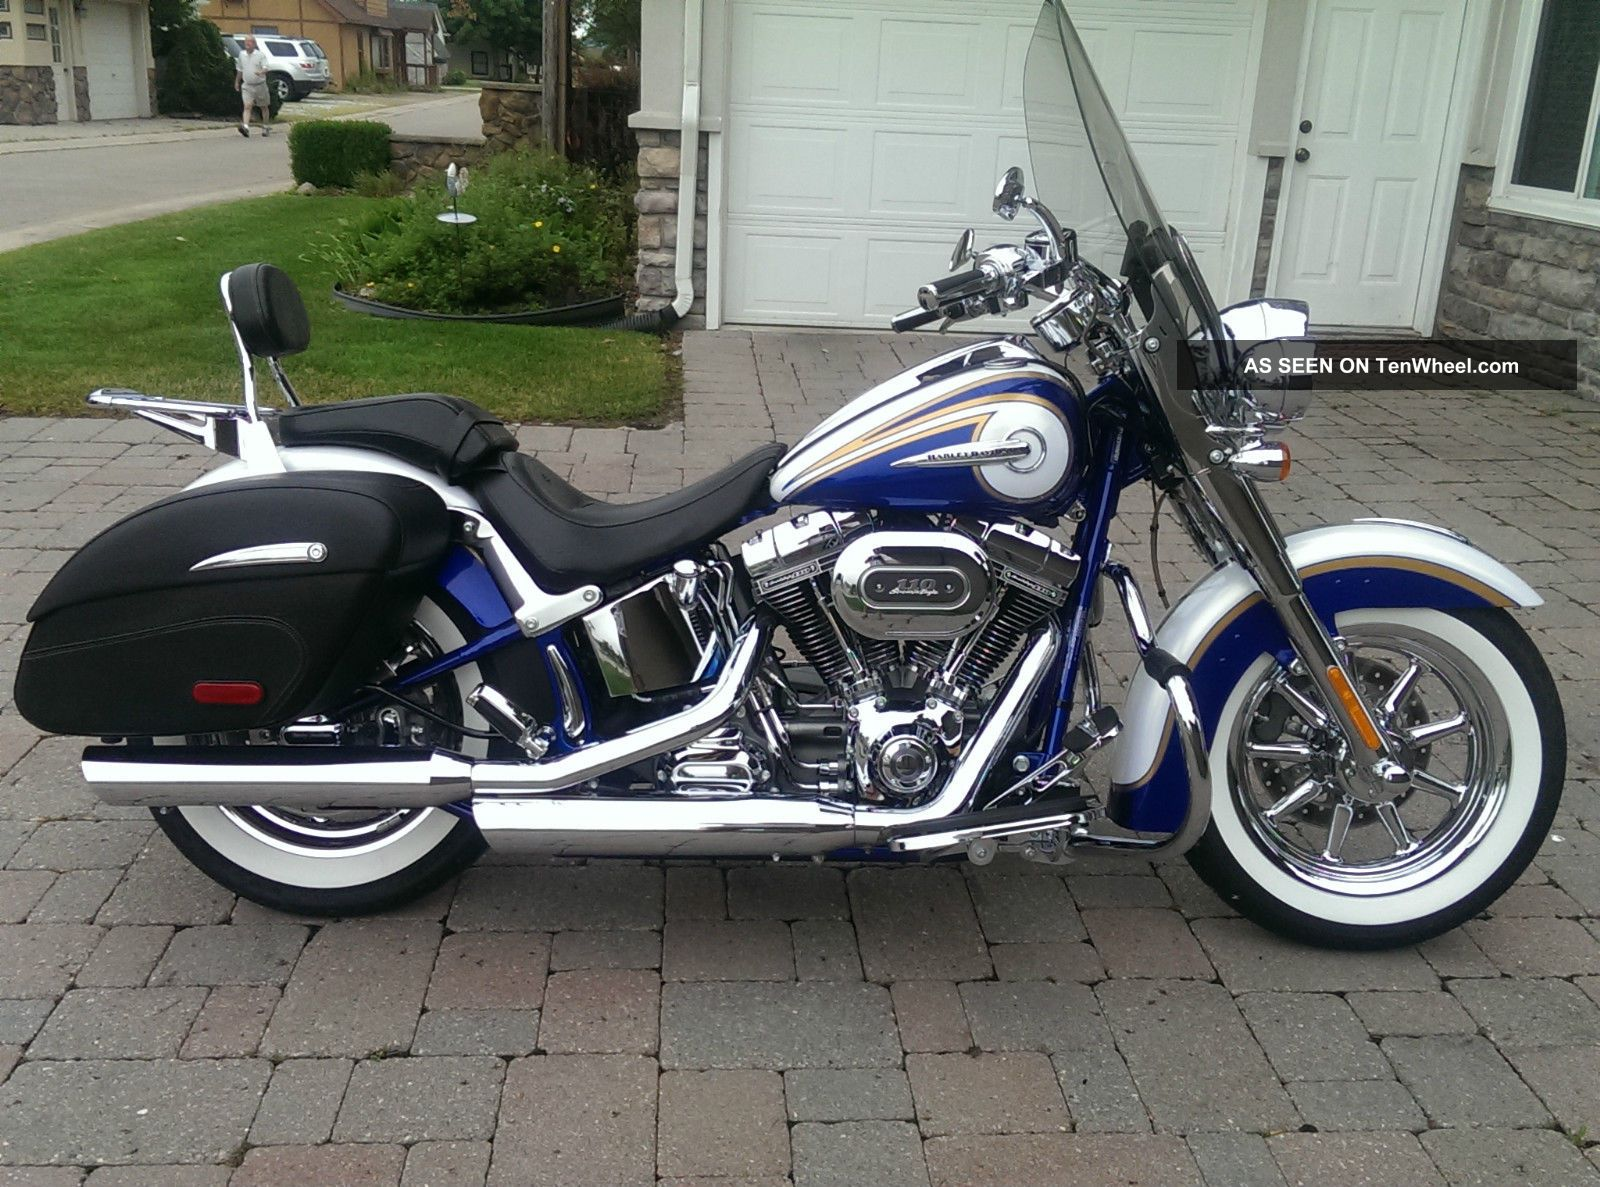 2014 Harley Davidson Cvo Softail Deluxe Motorcycle